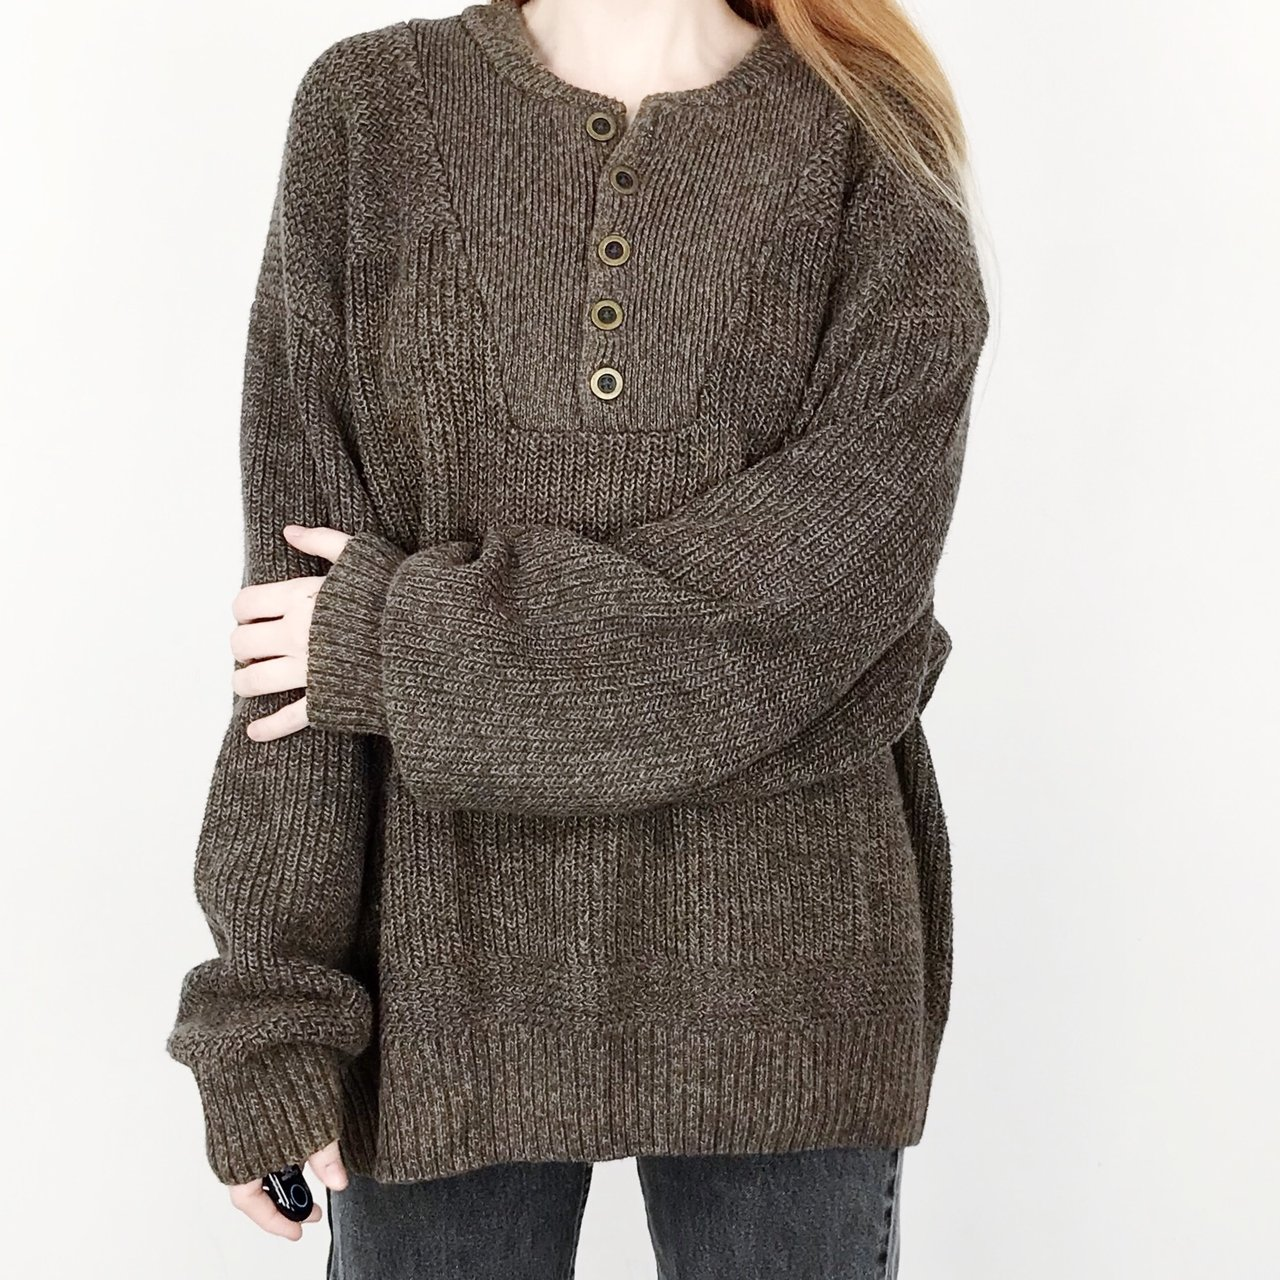 5643b2940ba8 90 s vintage oversized chunky knit textured heather brown    - Depop